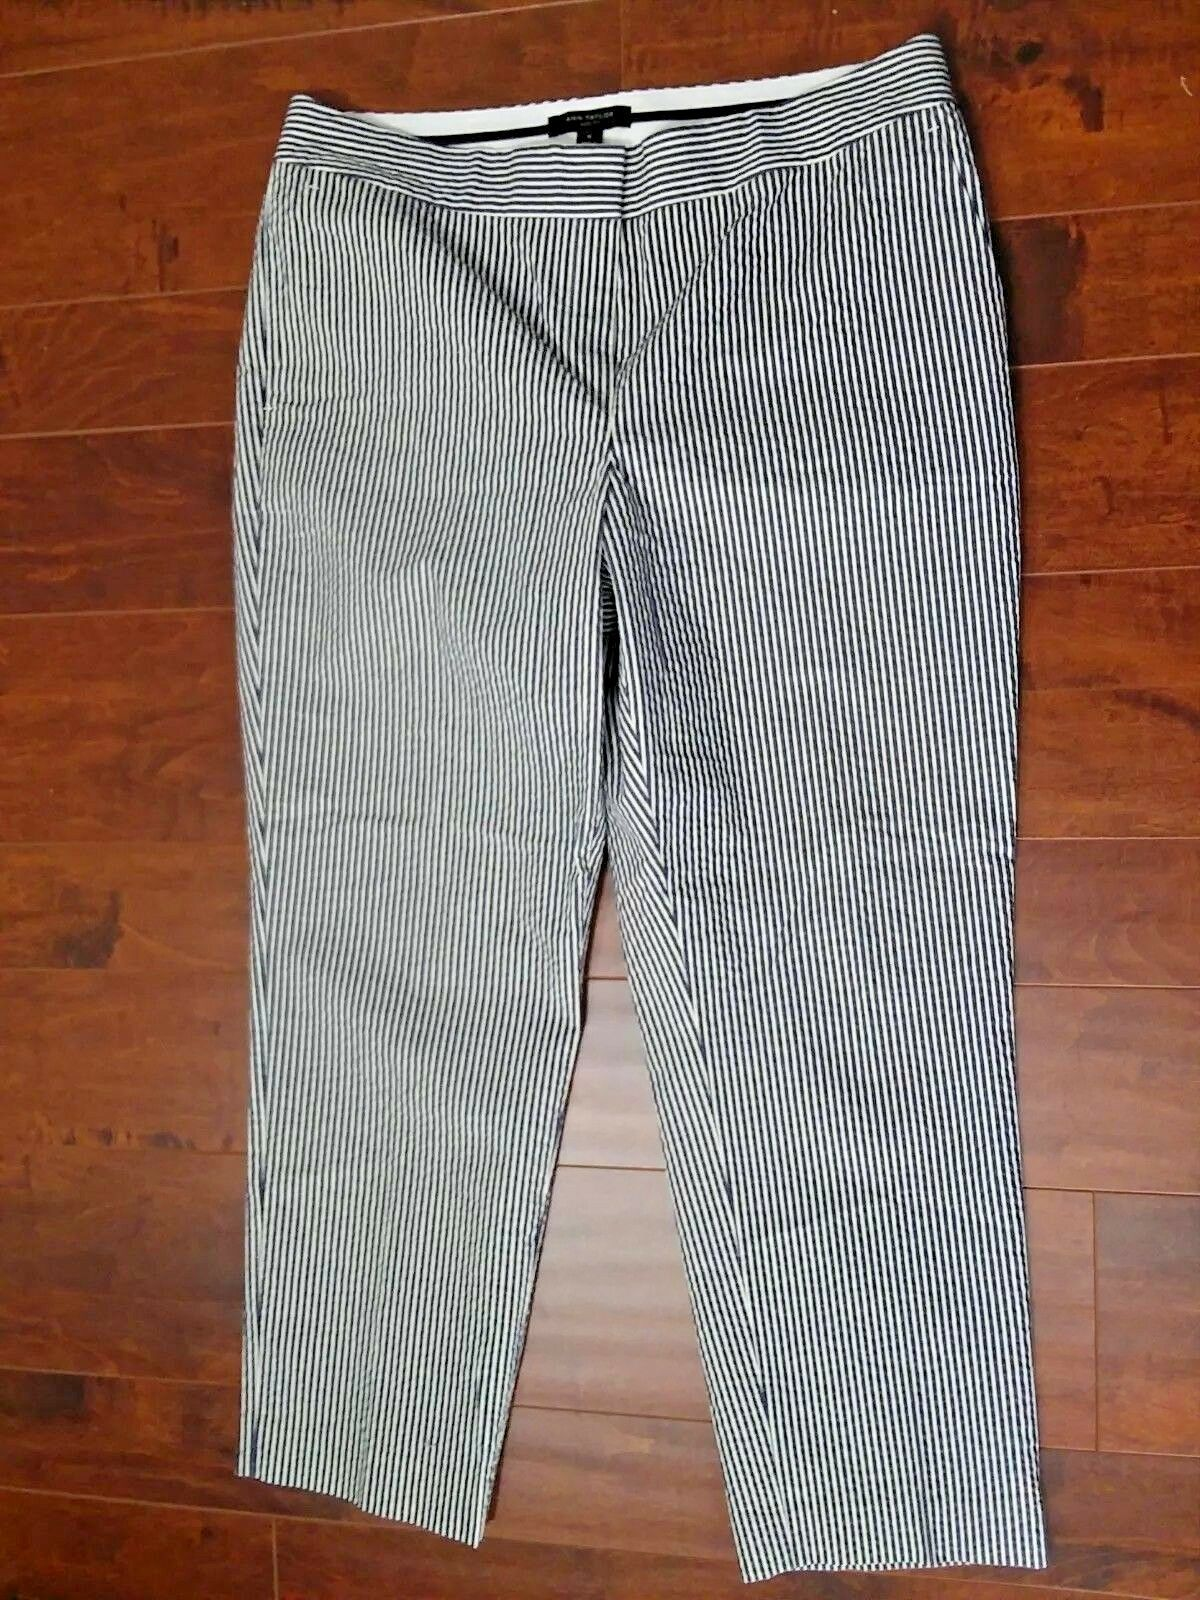 Ann Taylor Devin Straightest Fit Dress Pants Striped Women Size 10 NWOT HP